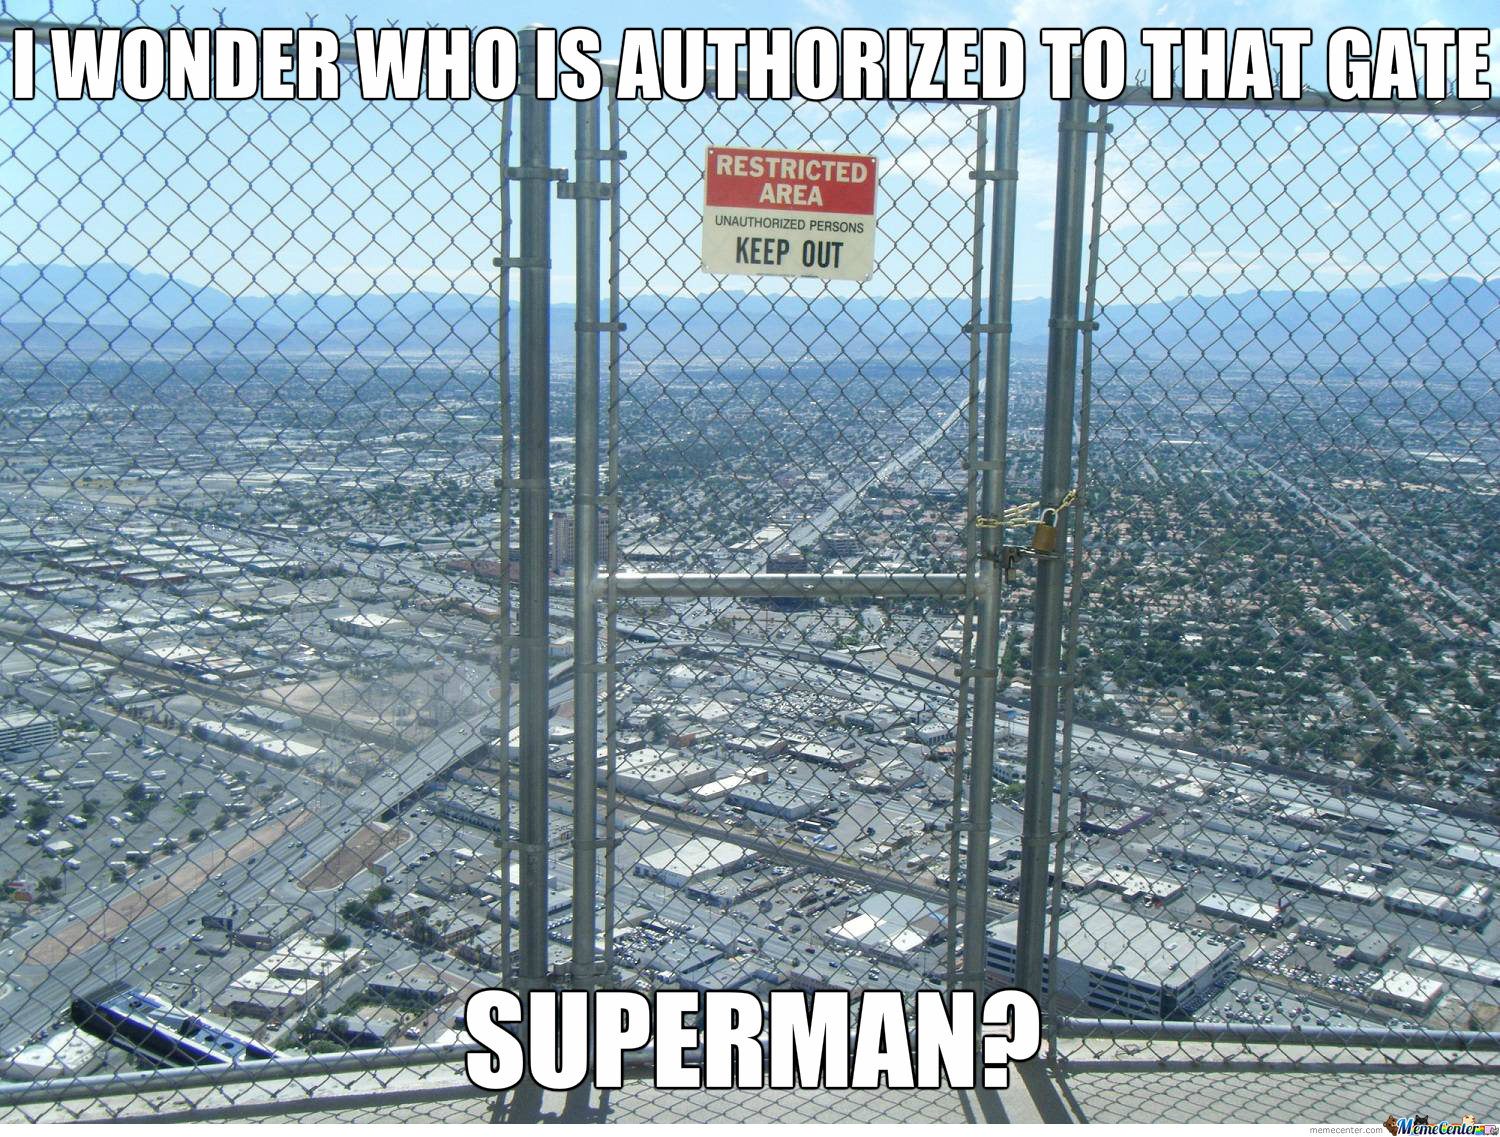 Or Is It For Authorized Suiciders?